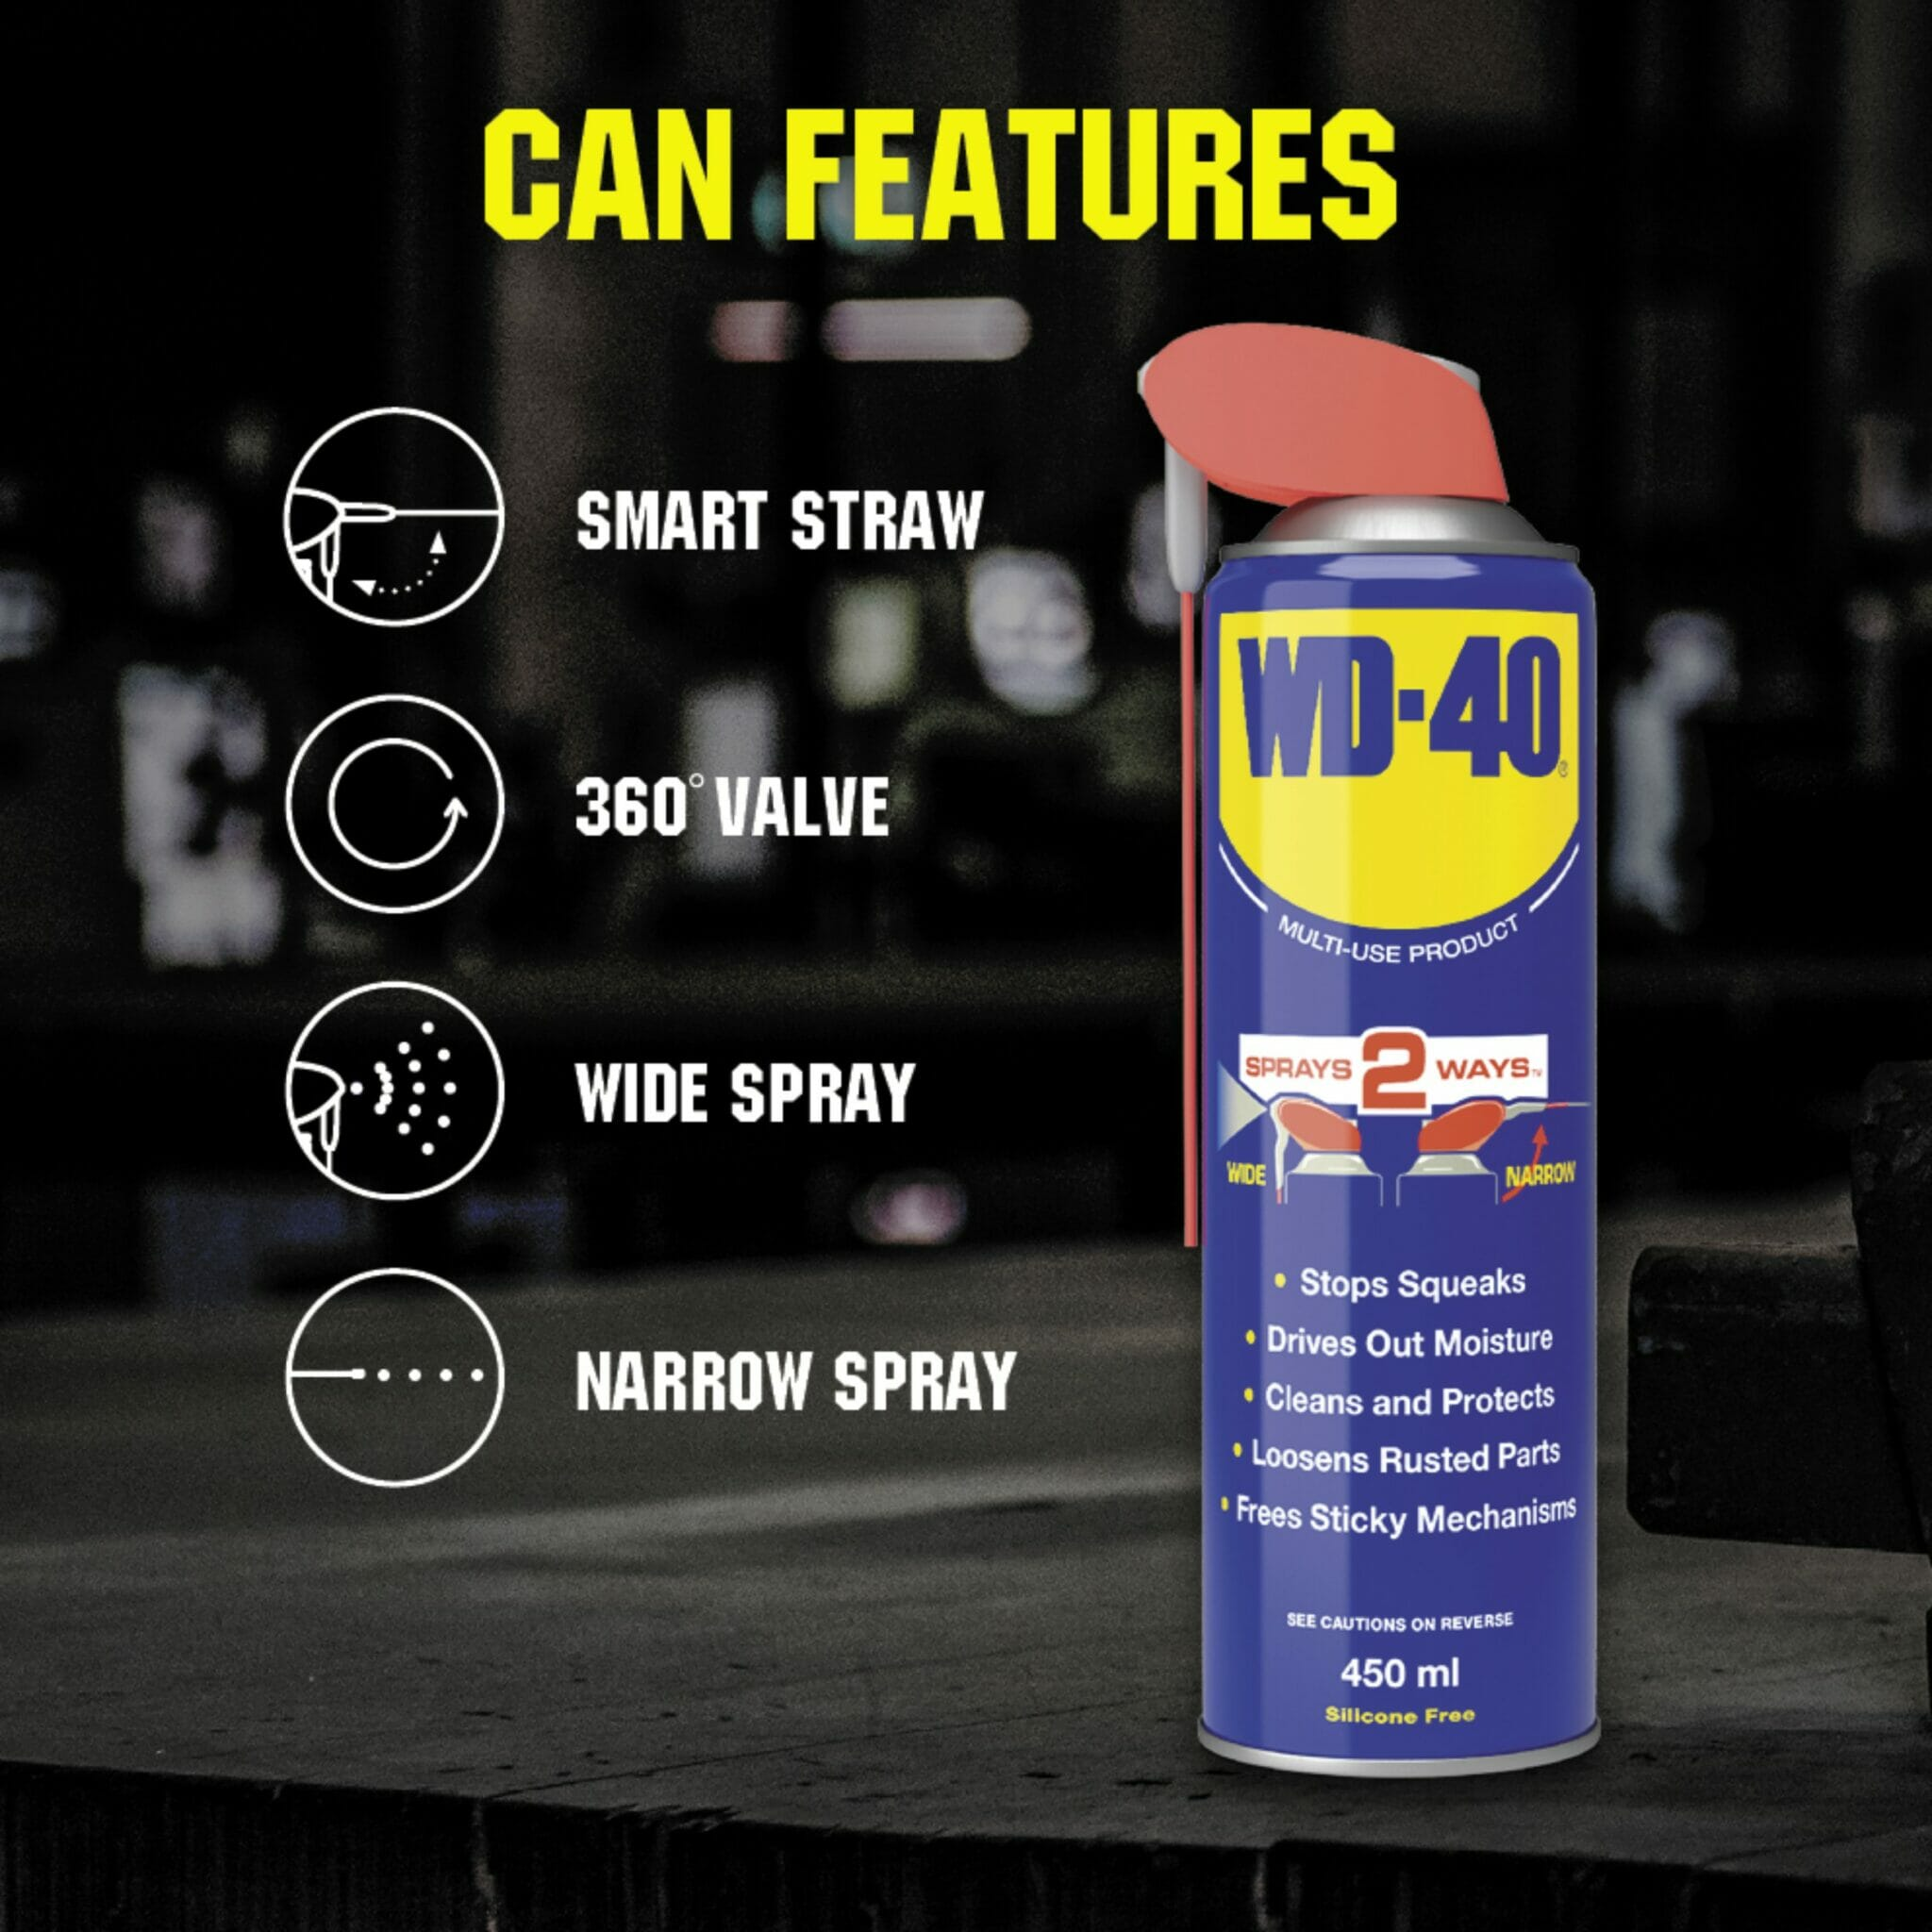 uk wd40 mup smart straw 450ml can features lifestyle background